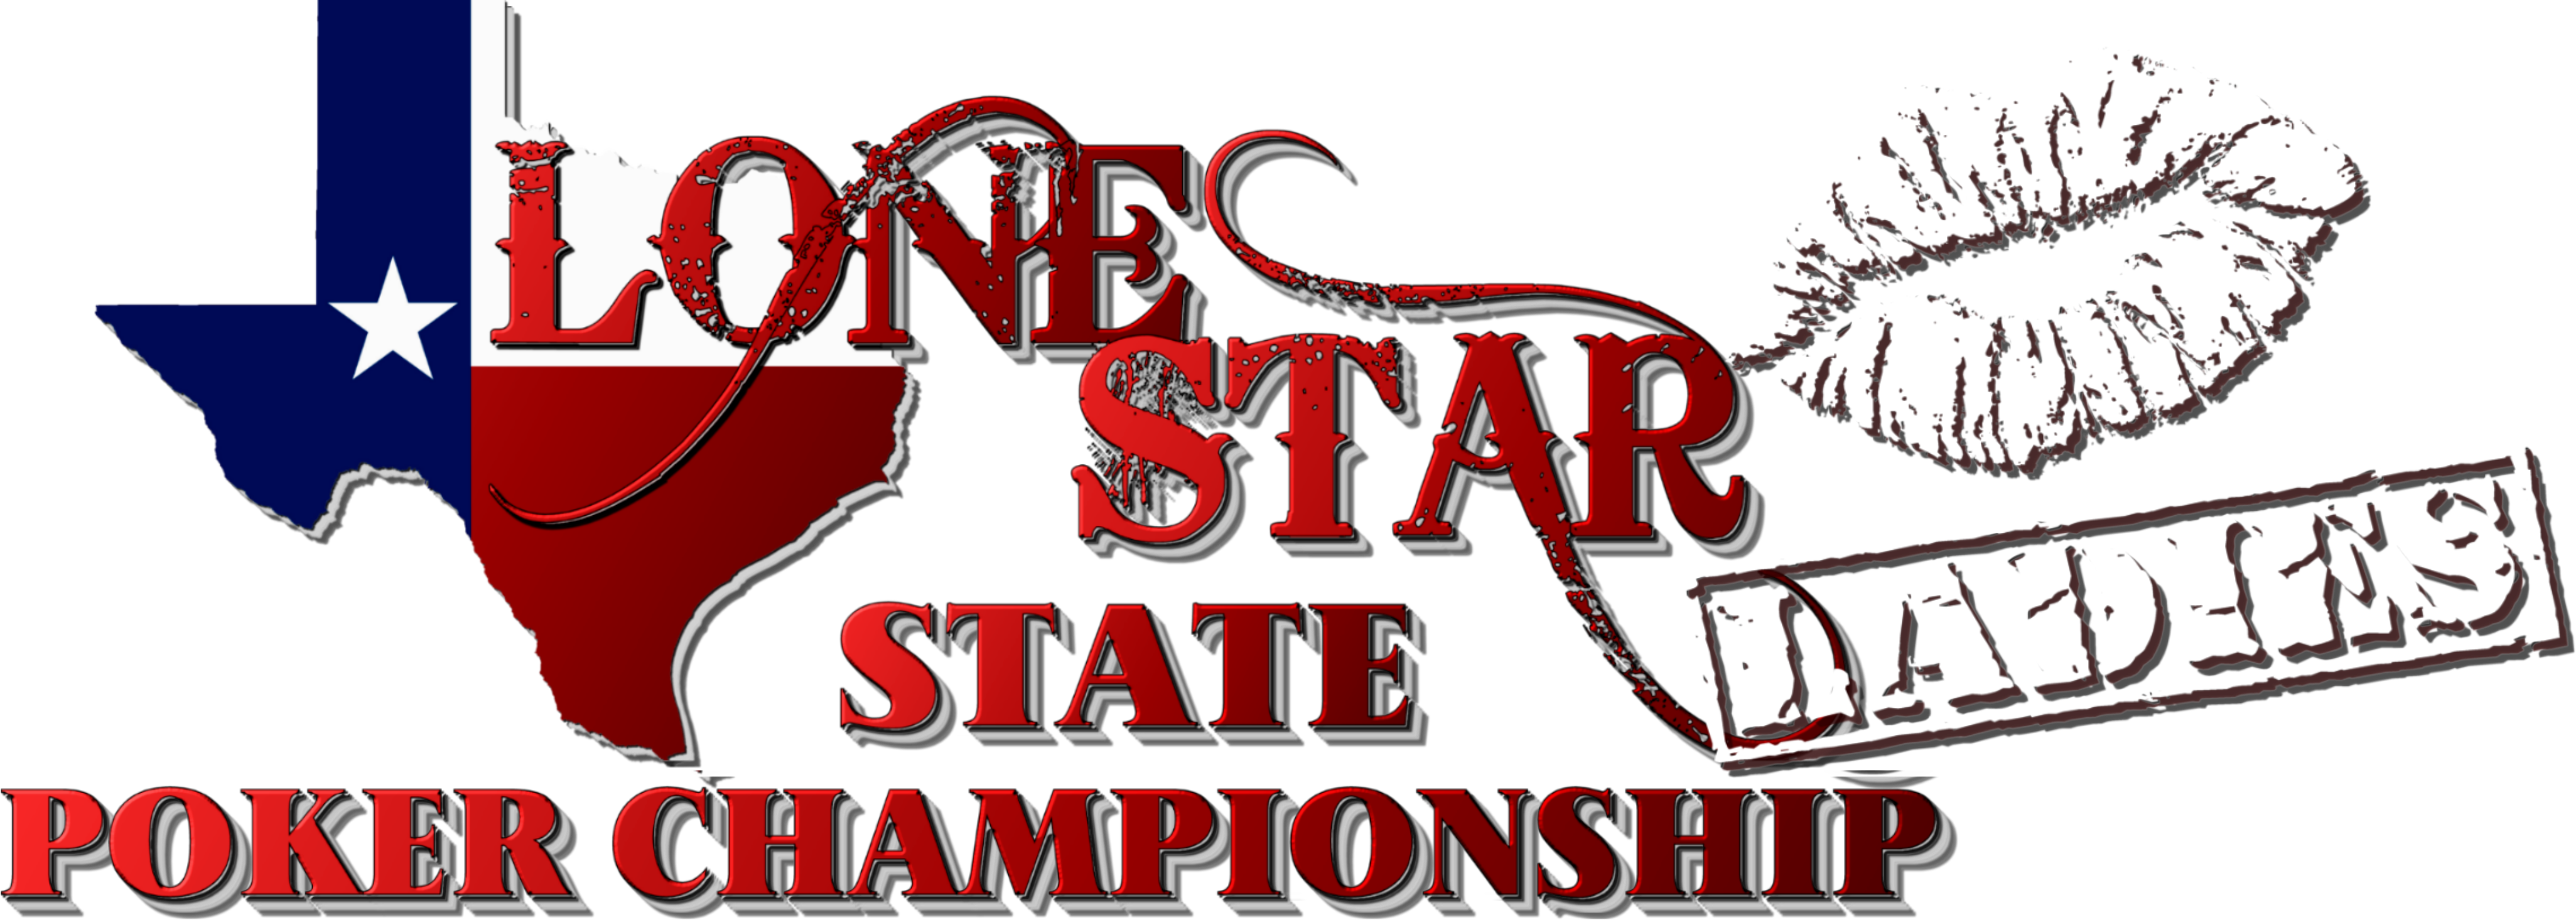 Lone Star State Ladies Poker Championship